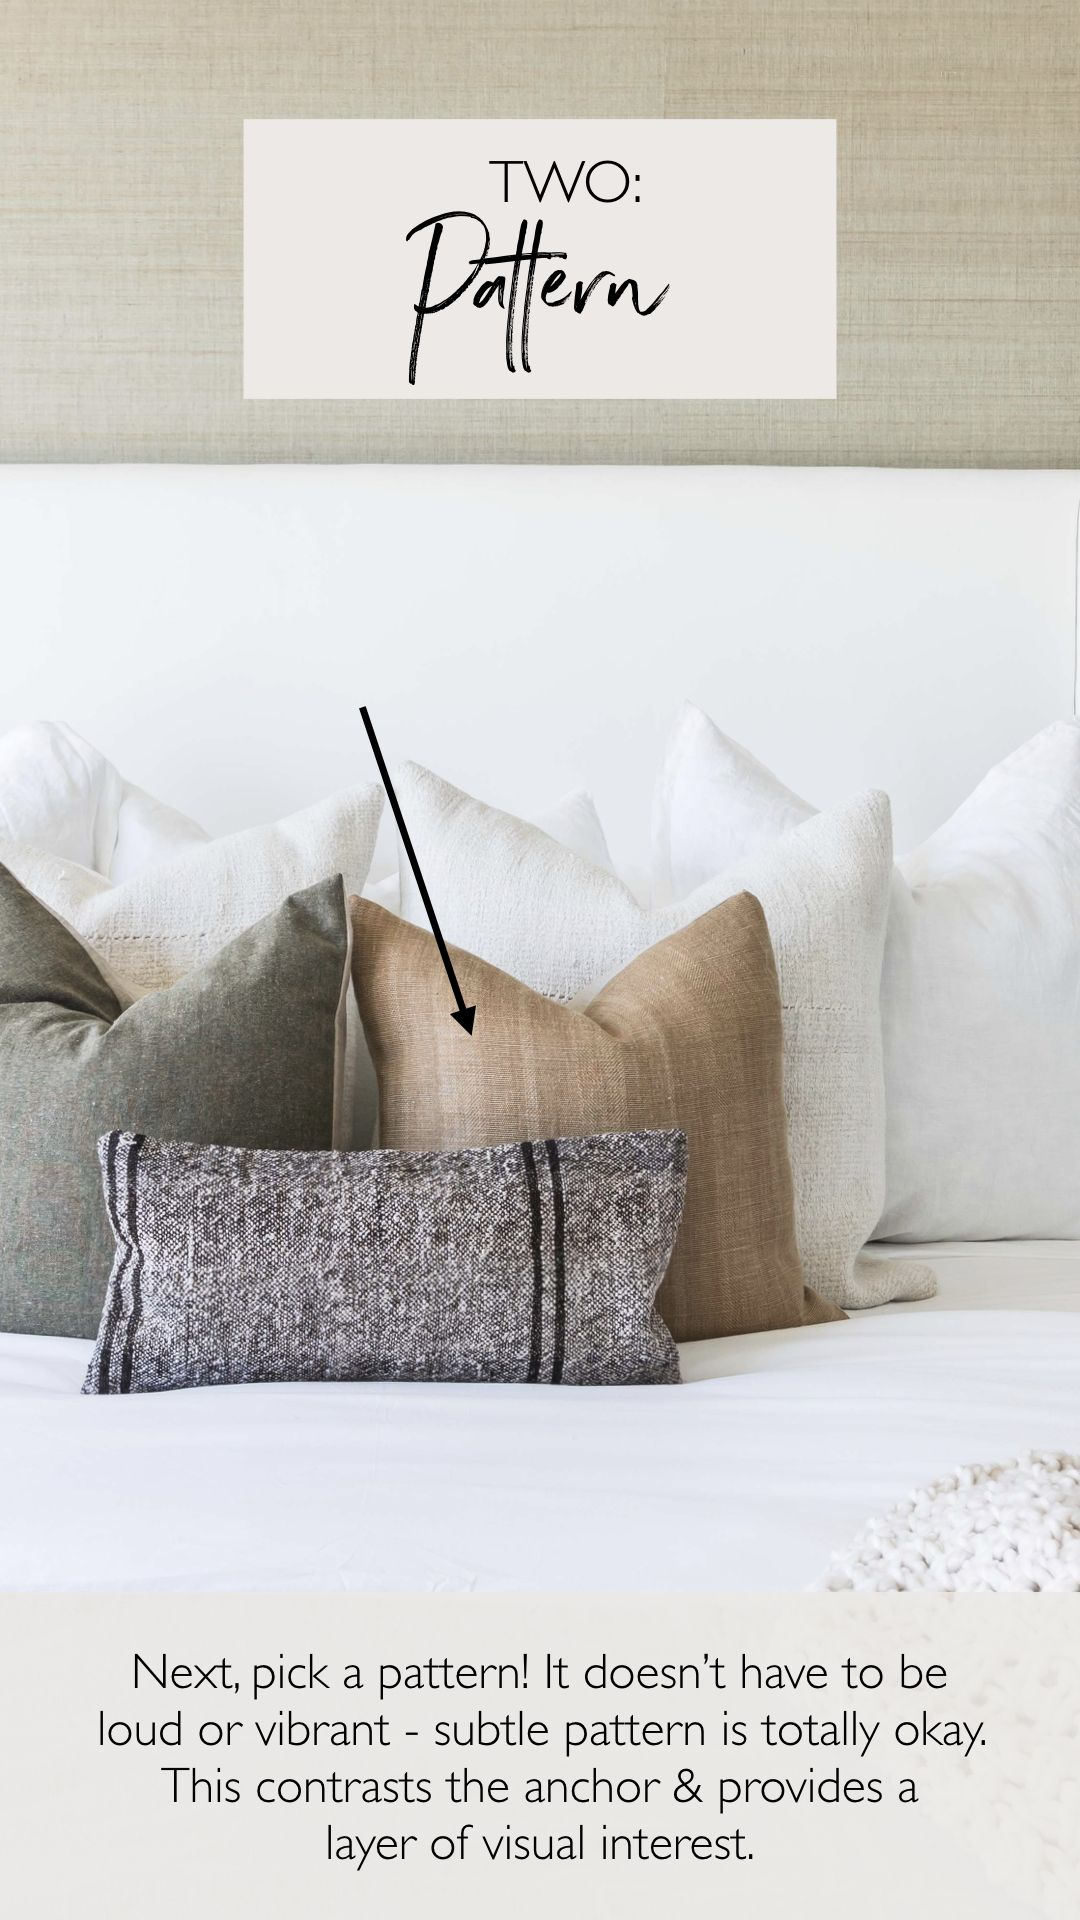 Pillow Styling | INTERIOR DESIGN TIPS AND TRICK | #DesignTips #InteriorDesign #InteriorDesignTips #Tips #DecorTips #DesignGuide #InteriorDesignGuide #HomeDecor